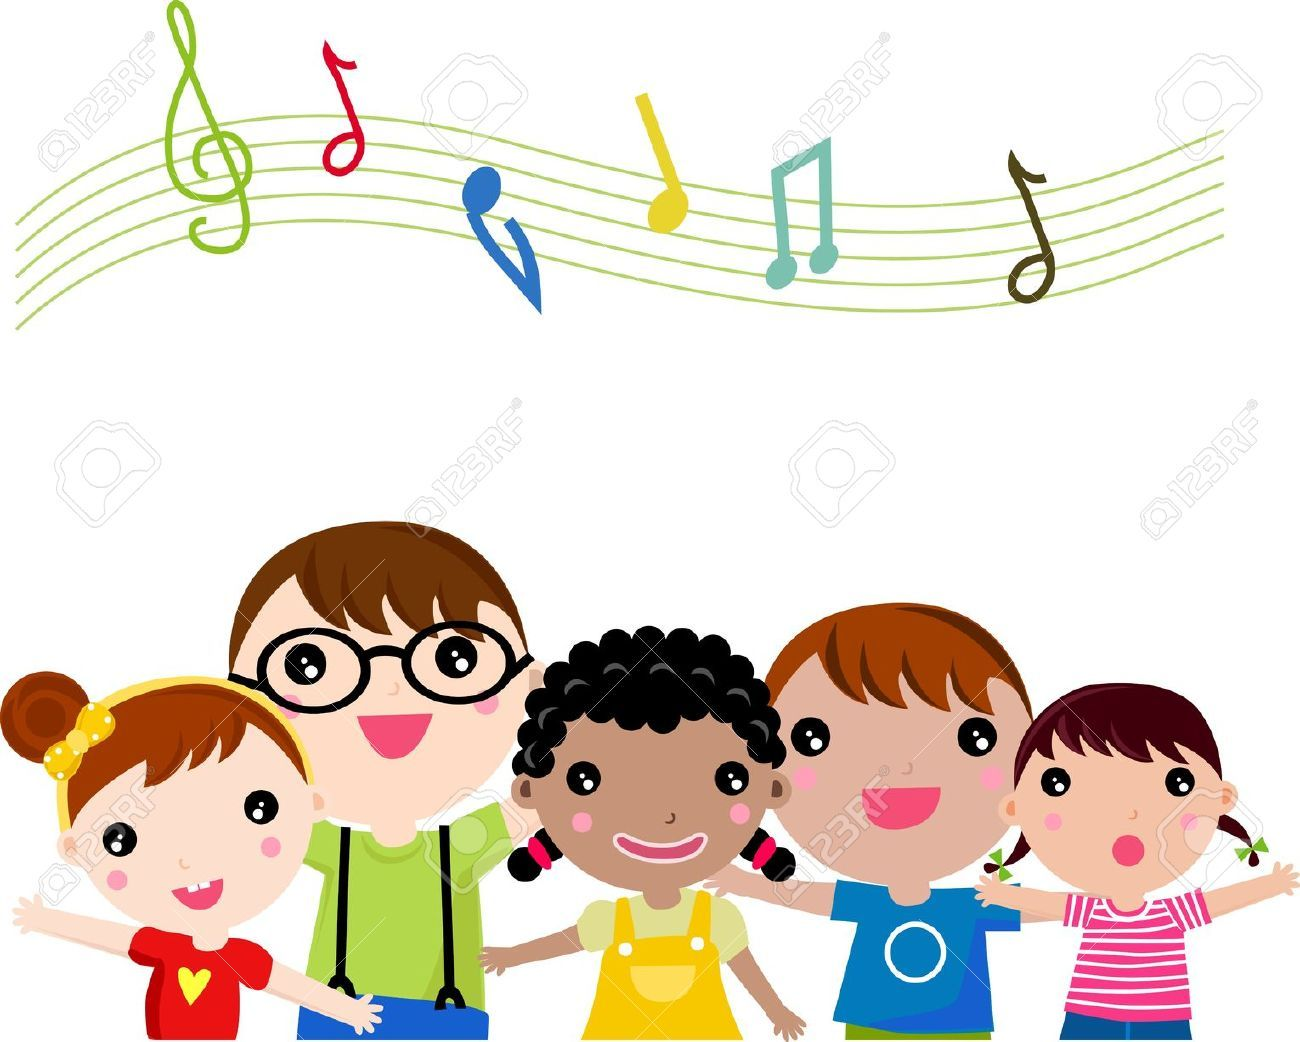 Singing time clipart picture free download Stock Vector | CHC Advent | Preschool music, Preschool songs ... picture free download